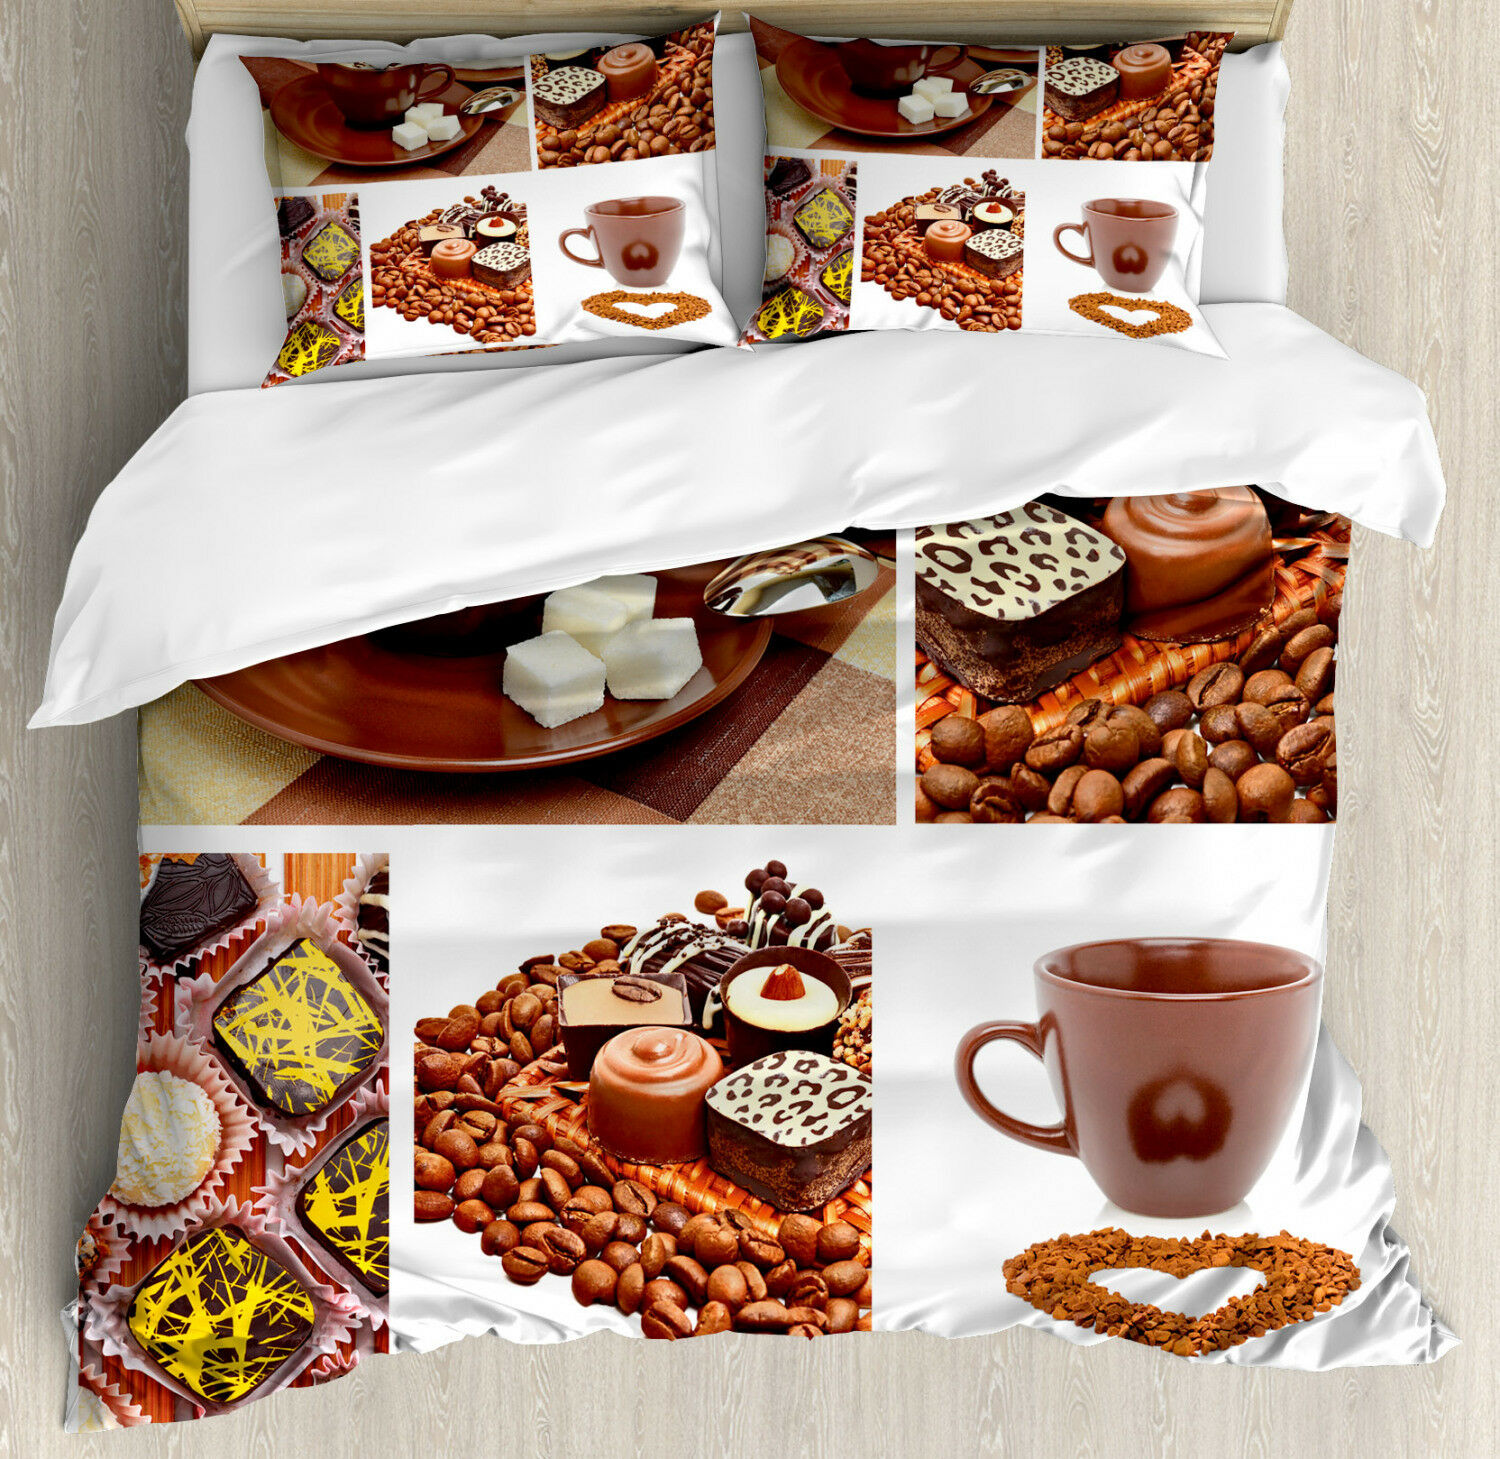 Coffee Duvet Cover Set with Pillow Shams Sweets and Coffee Beans Print